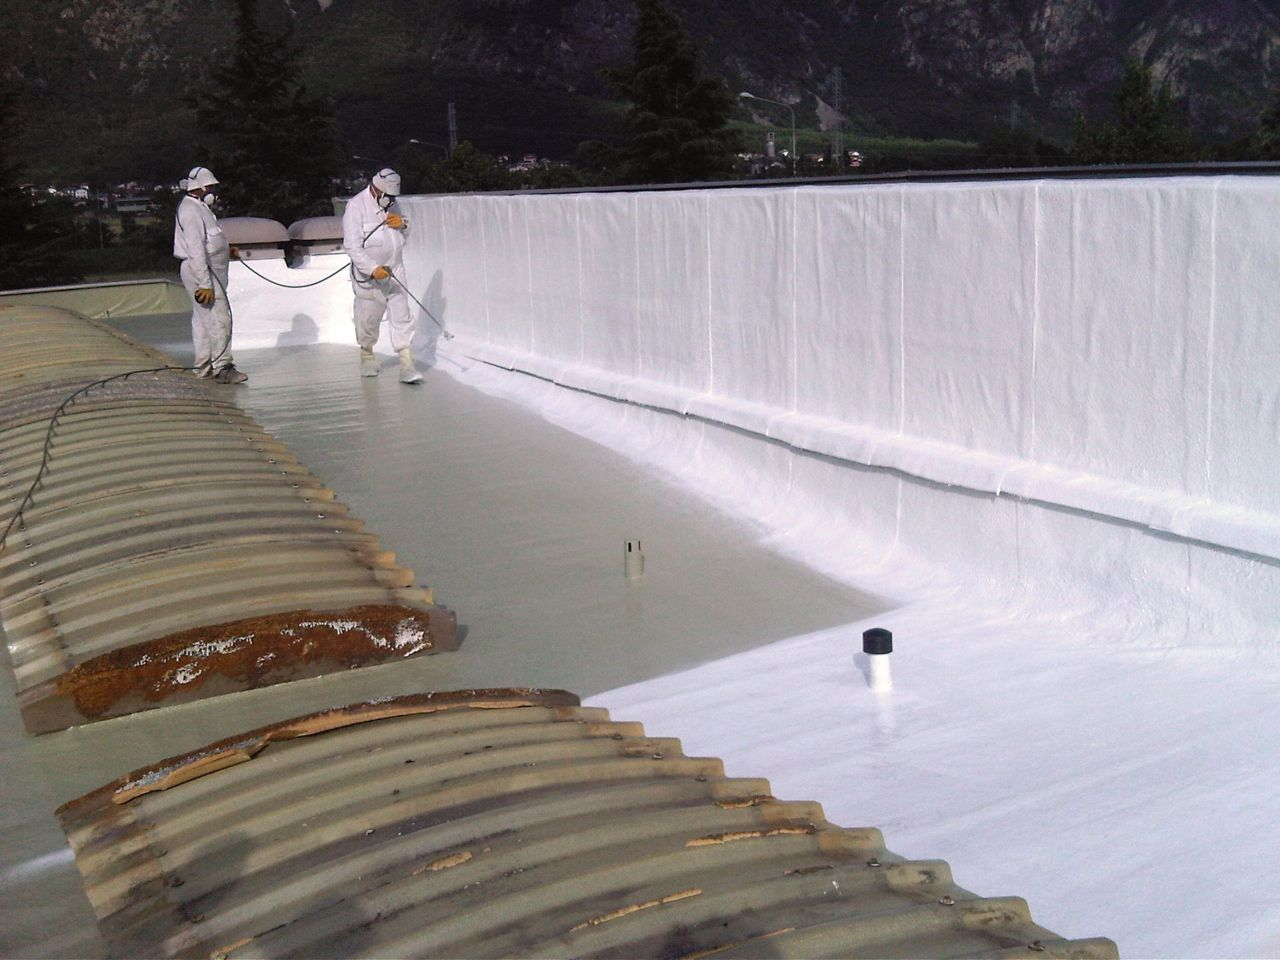 Roof refurbishment work of the Leaf Factory in Italy